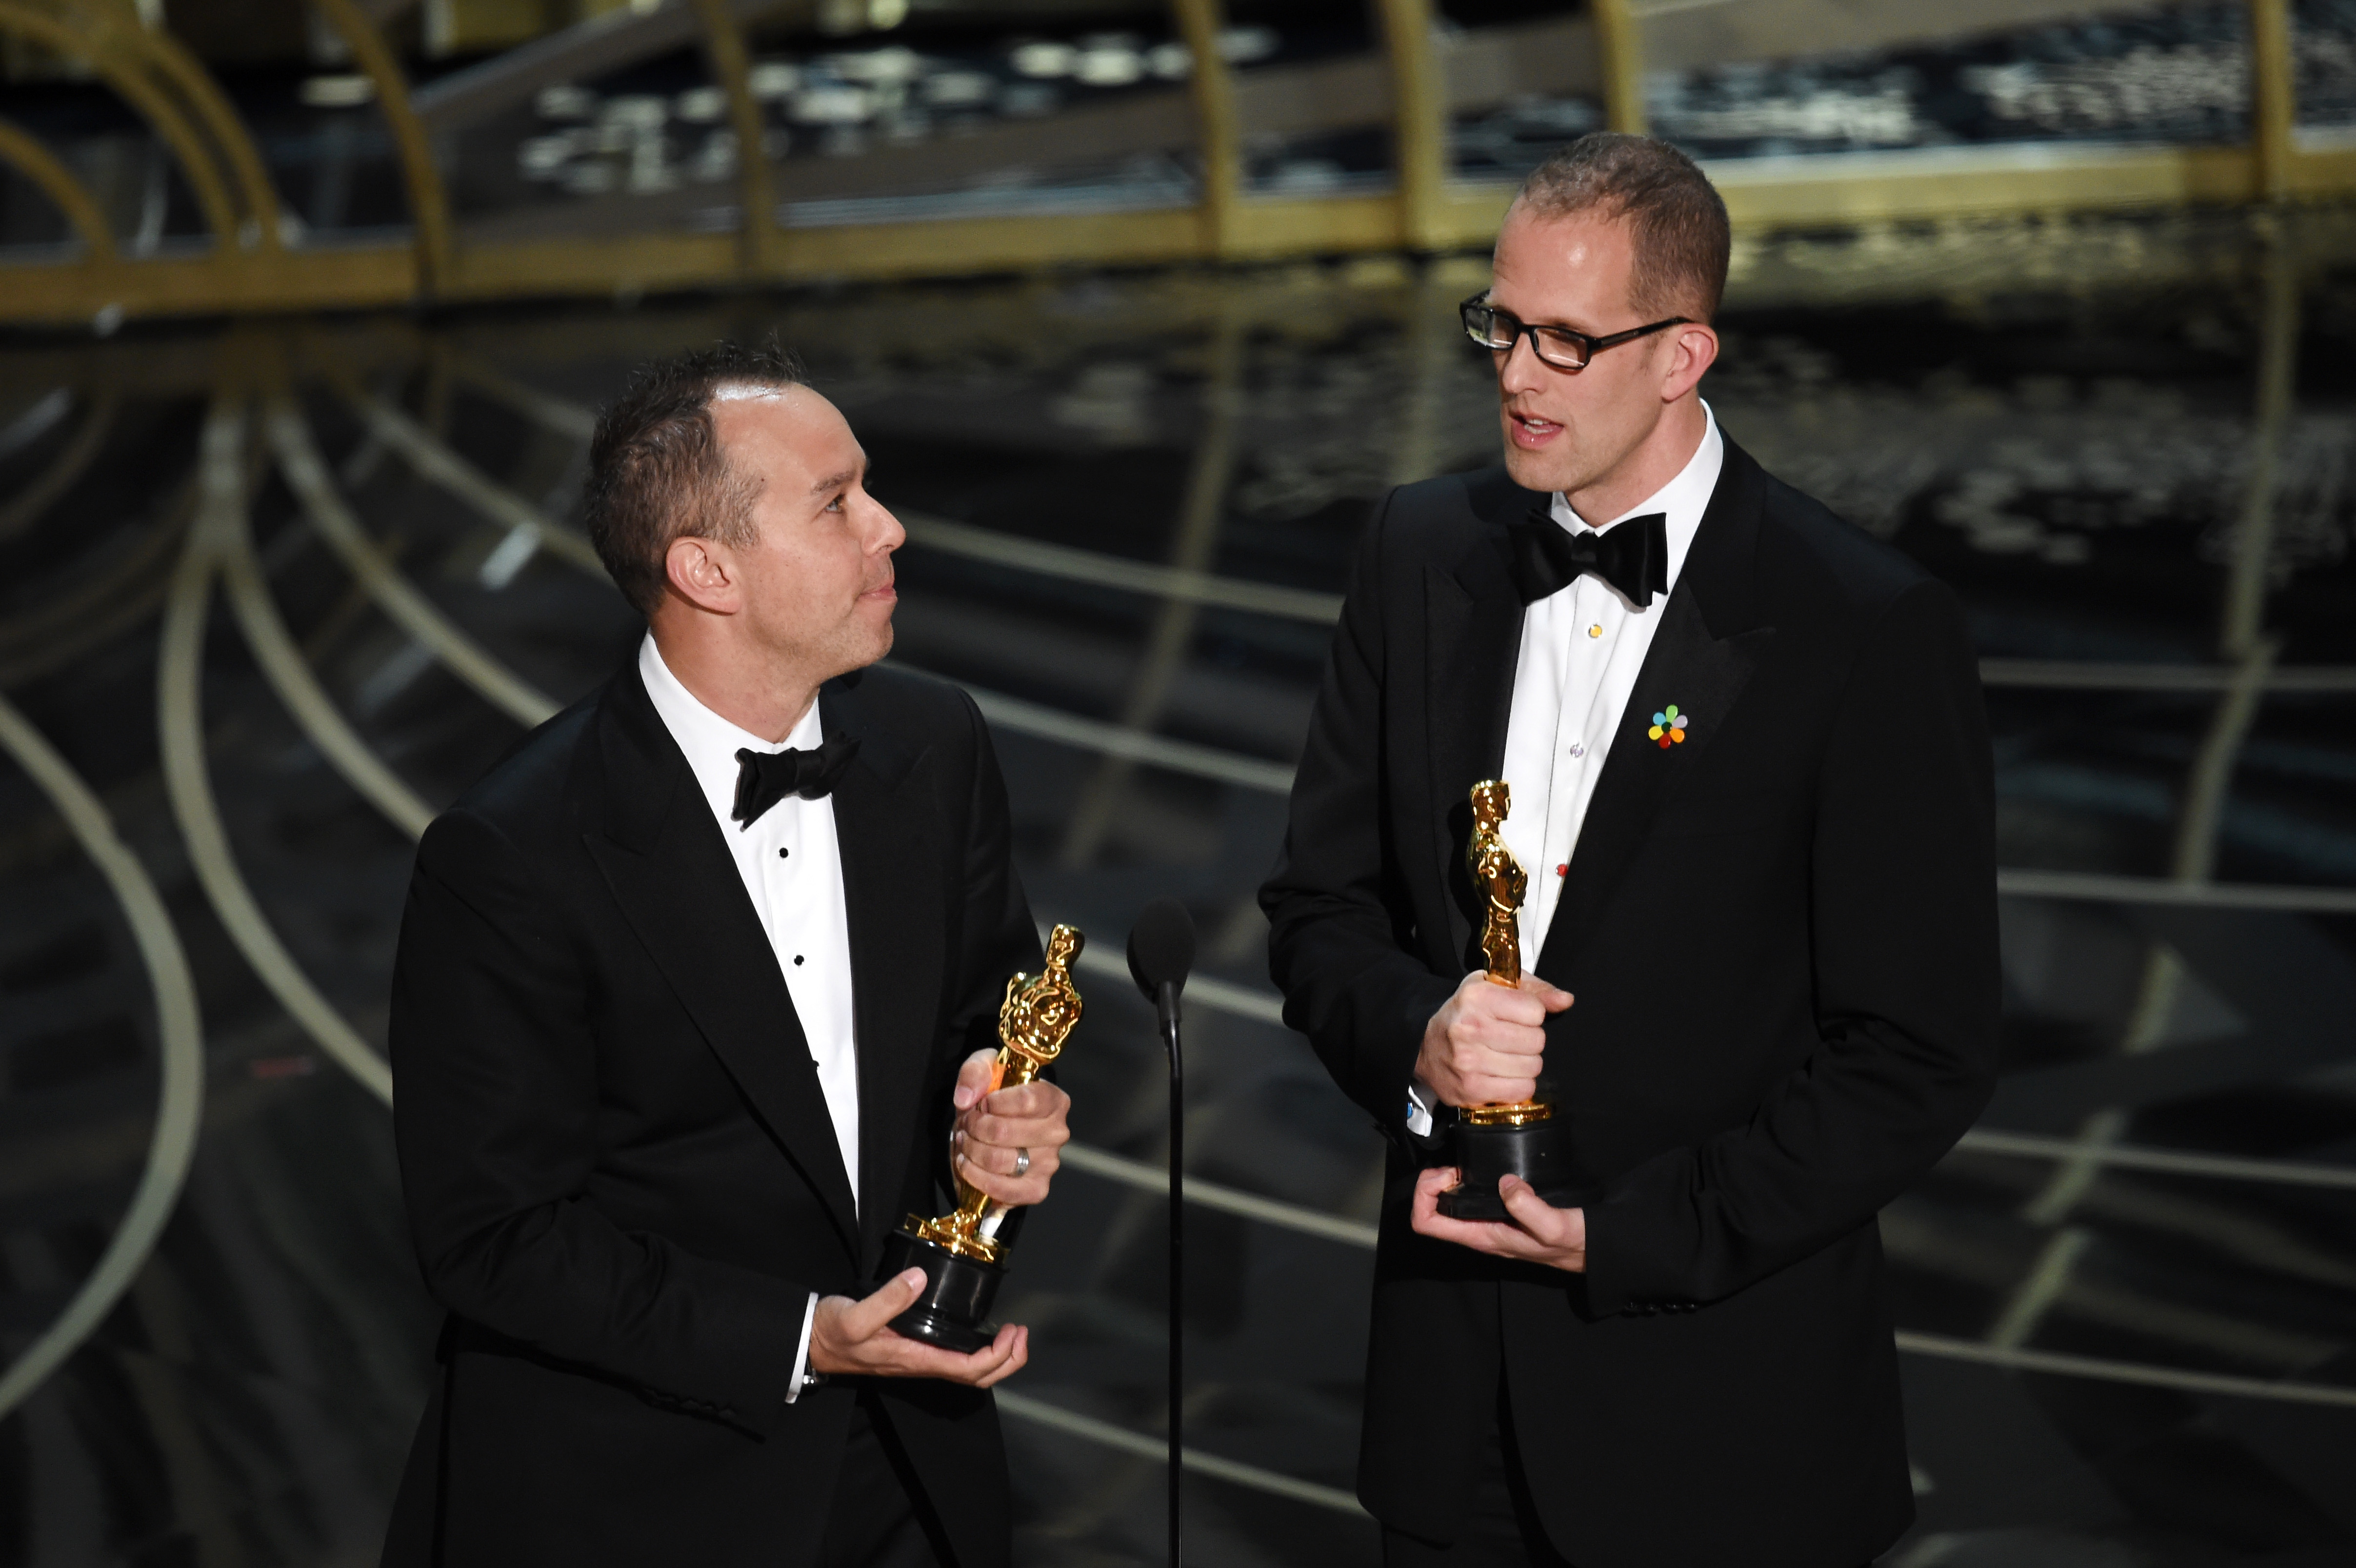 Jonas Rivera and Pete Docter accept Best Animated Feature award for Inside Out at the 88th Academy Award. (Photo courtesy of The Oscar)